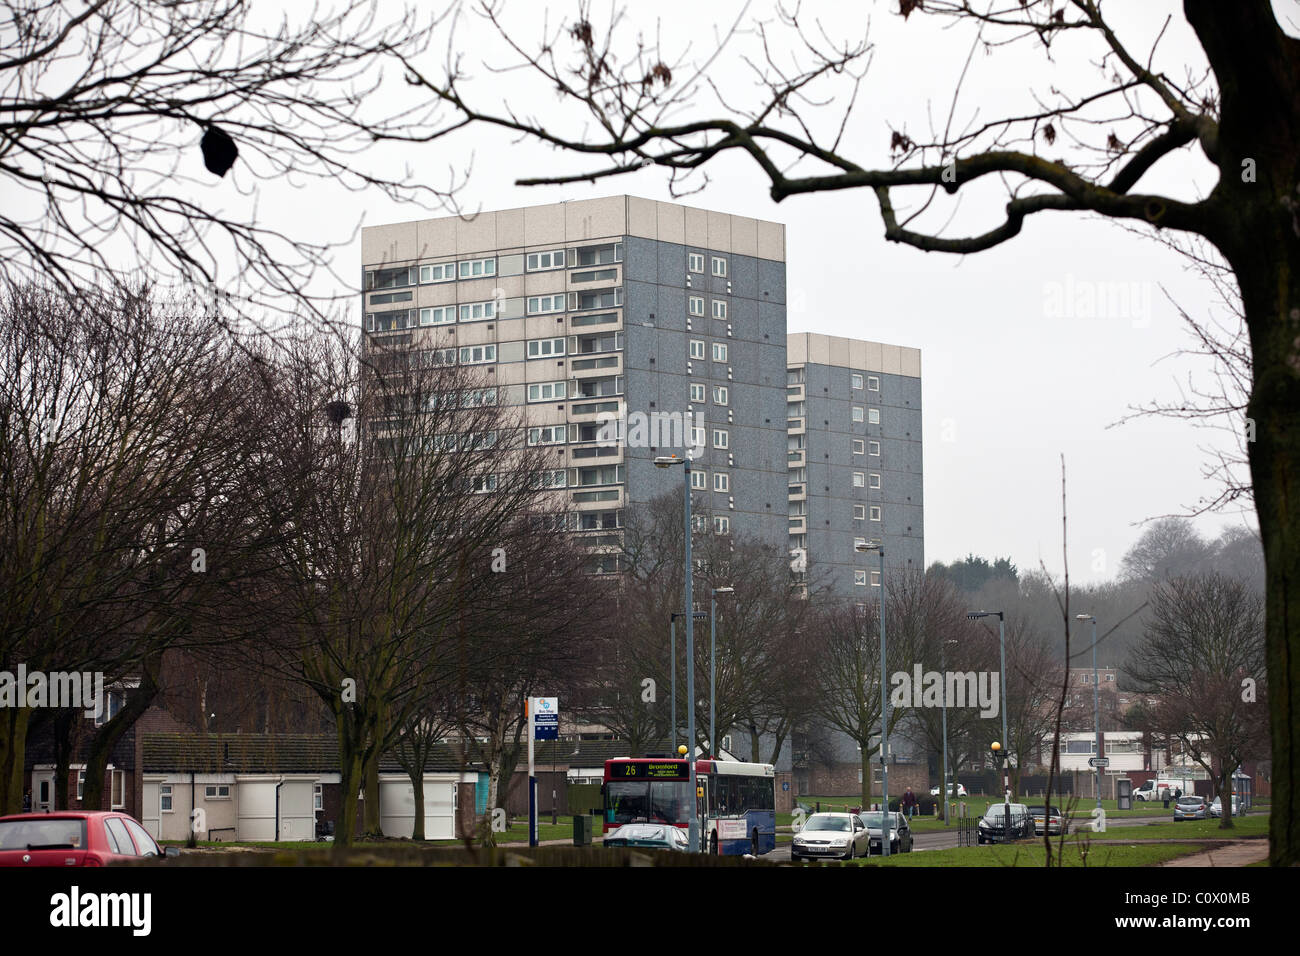 A view of residential tower block apartments in the Hodge Hill area of Birmingham, UK. - Stock Image